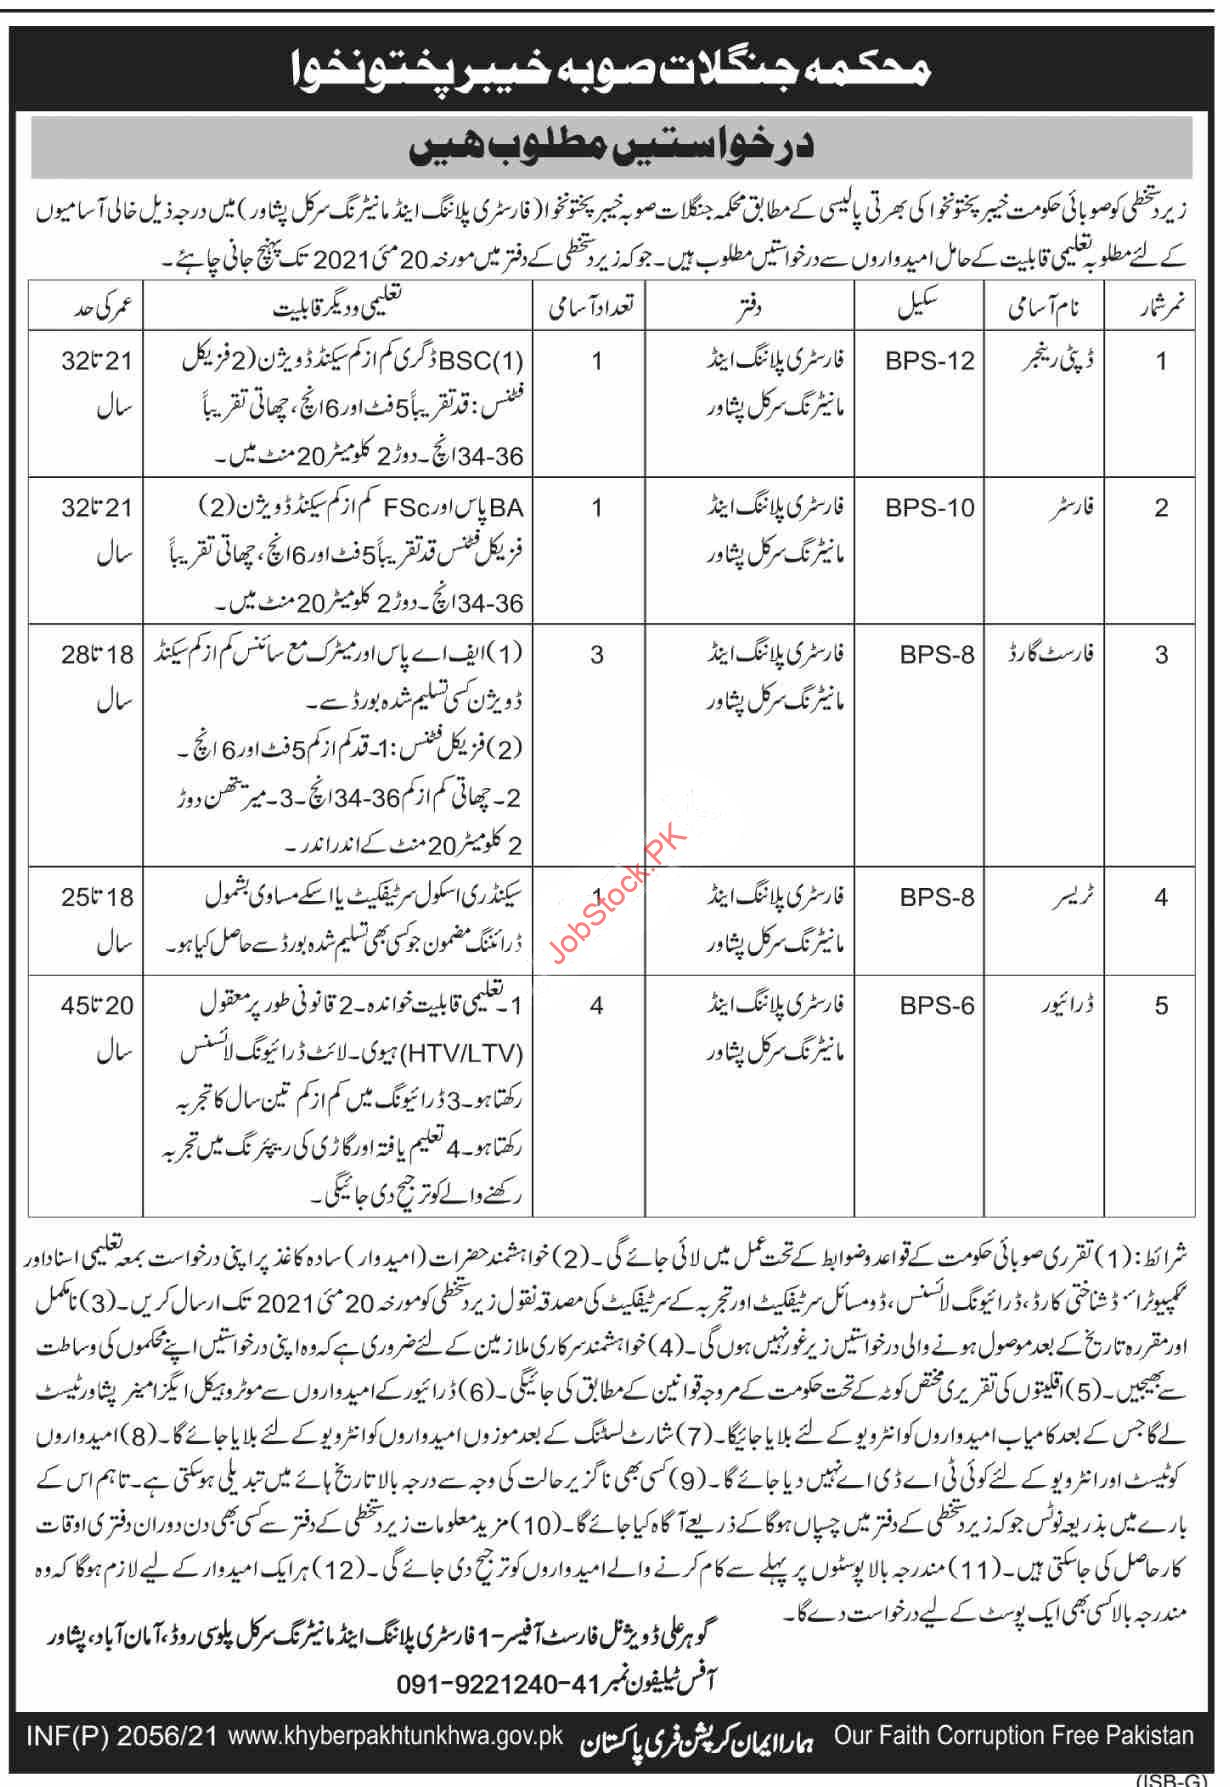 Forestry Environment & Wildlife Department Kpk Jobs 2021